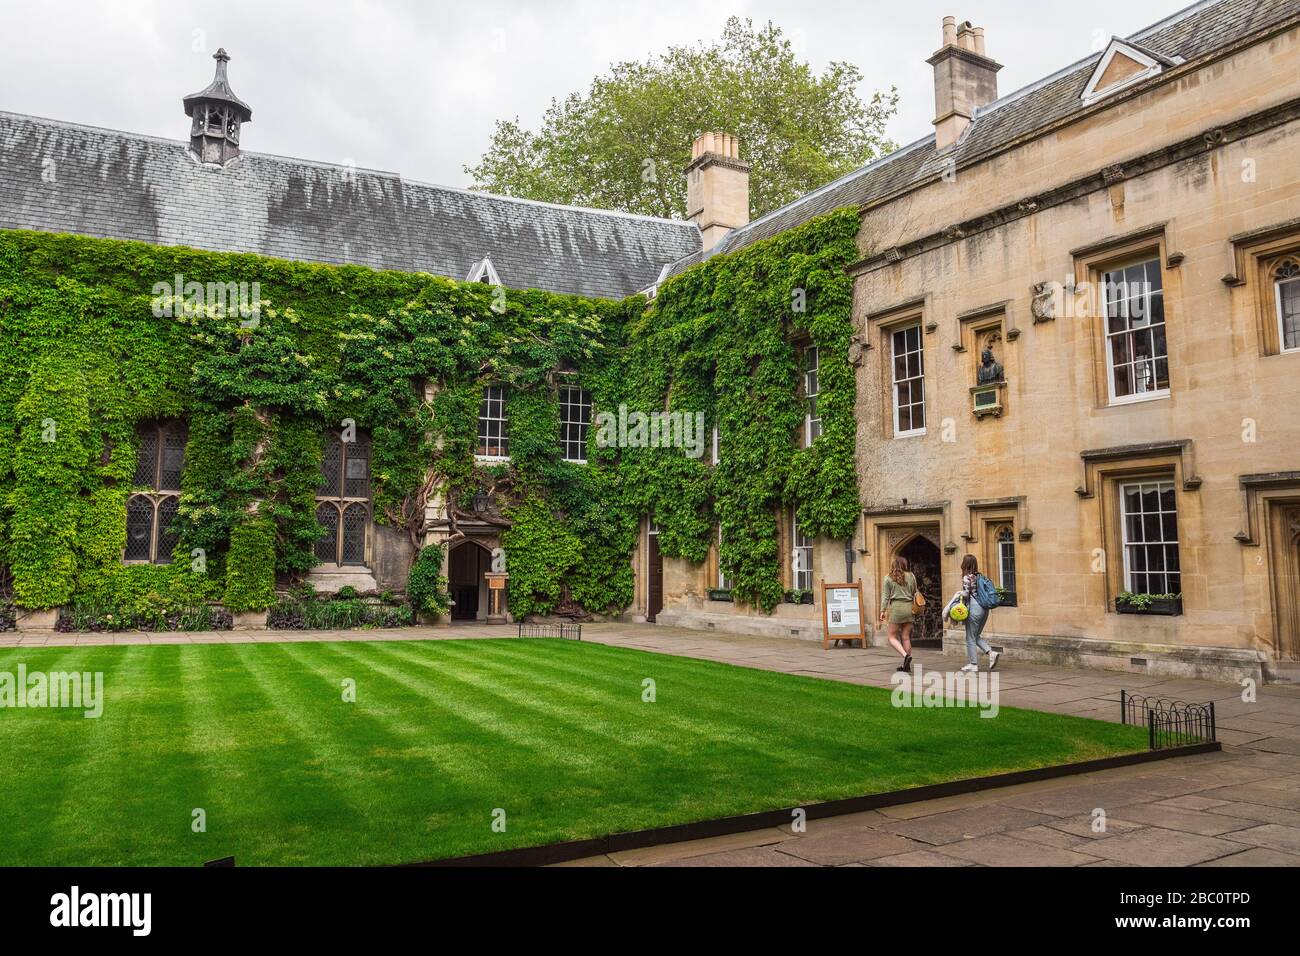 Lincoln College, Oxford, England, United Kingdom. July 2019. The College of the Blessed Mary and All Saints, Oxford University. Climbing plants Stock Photo